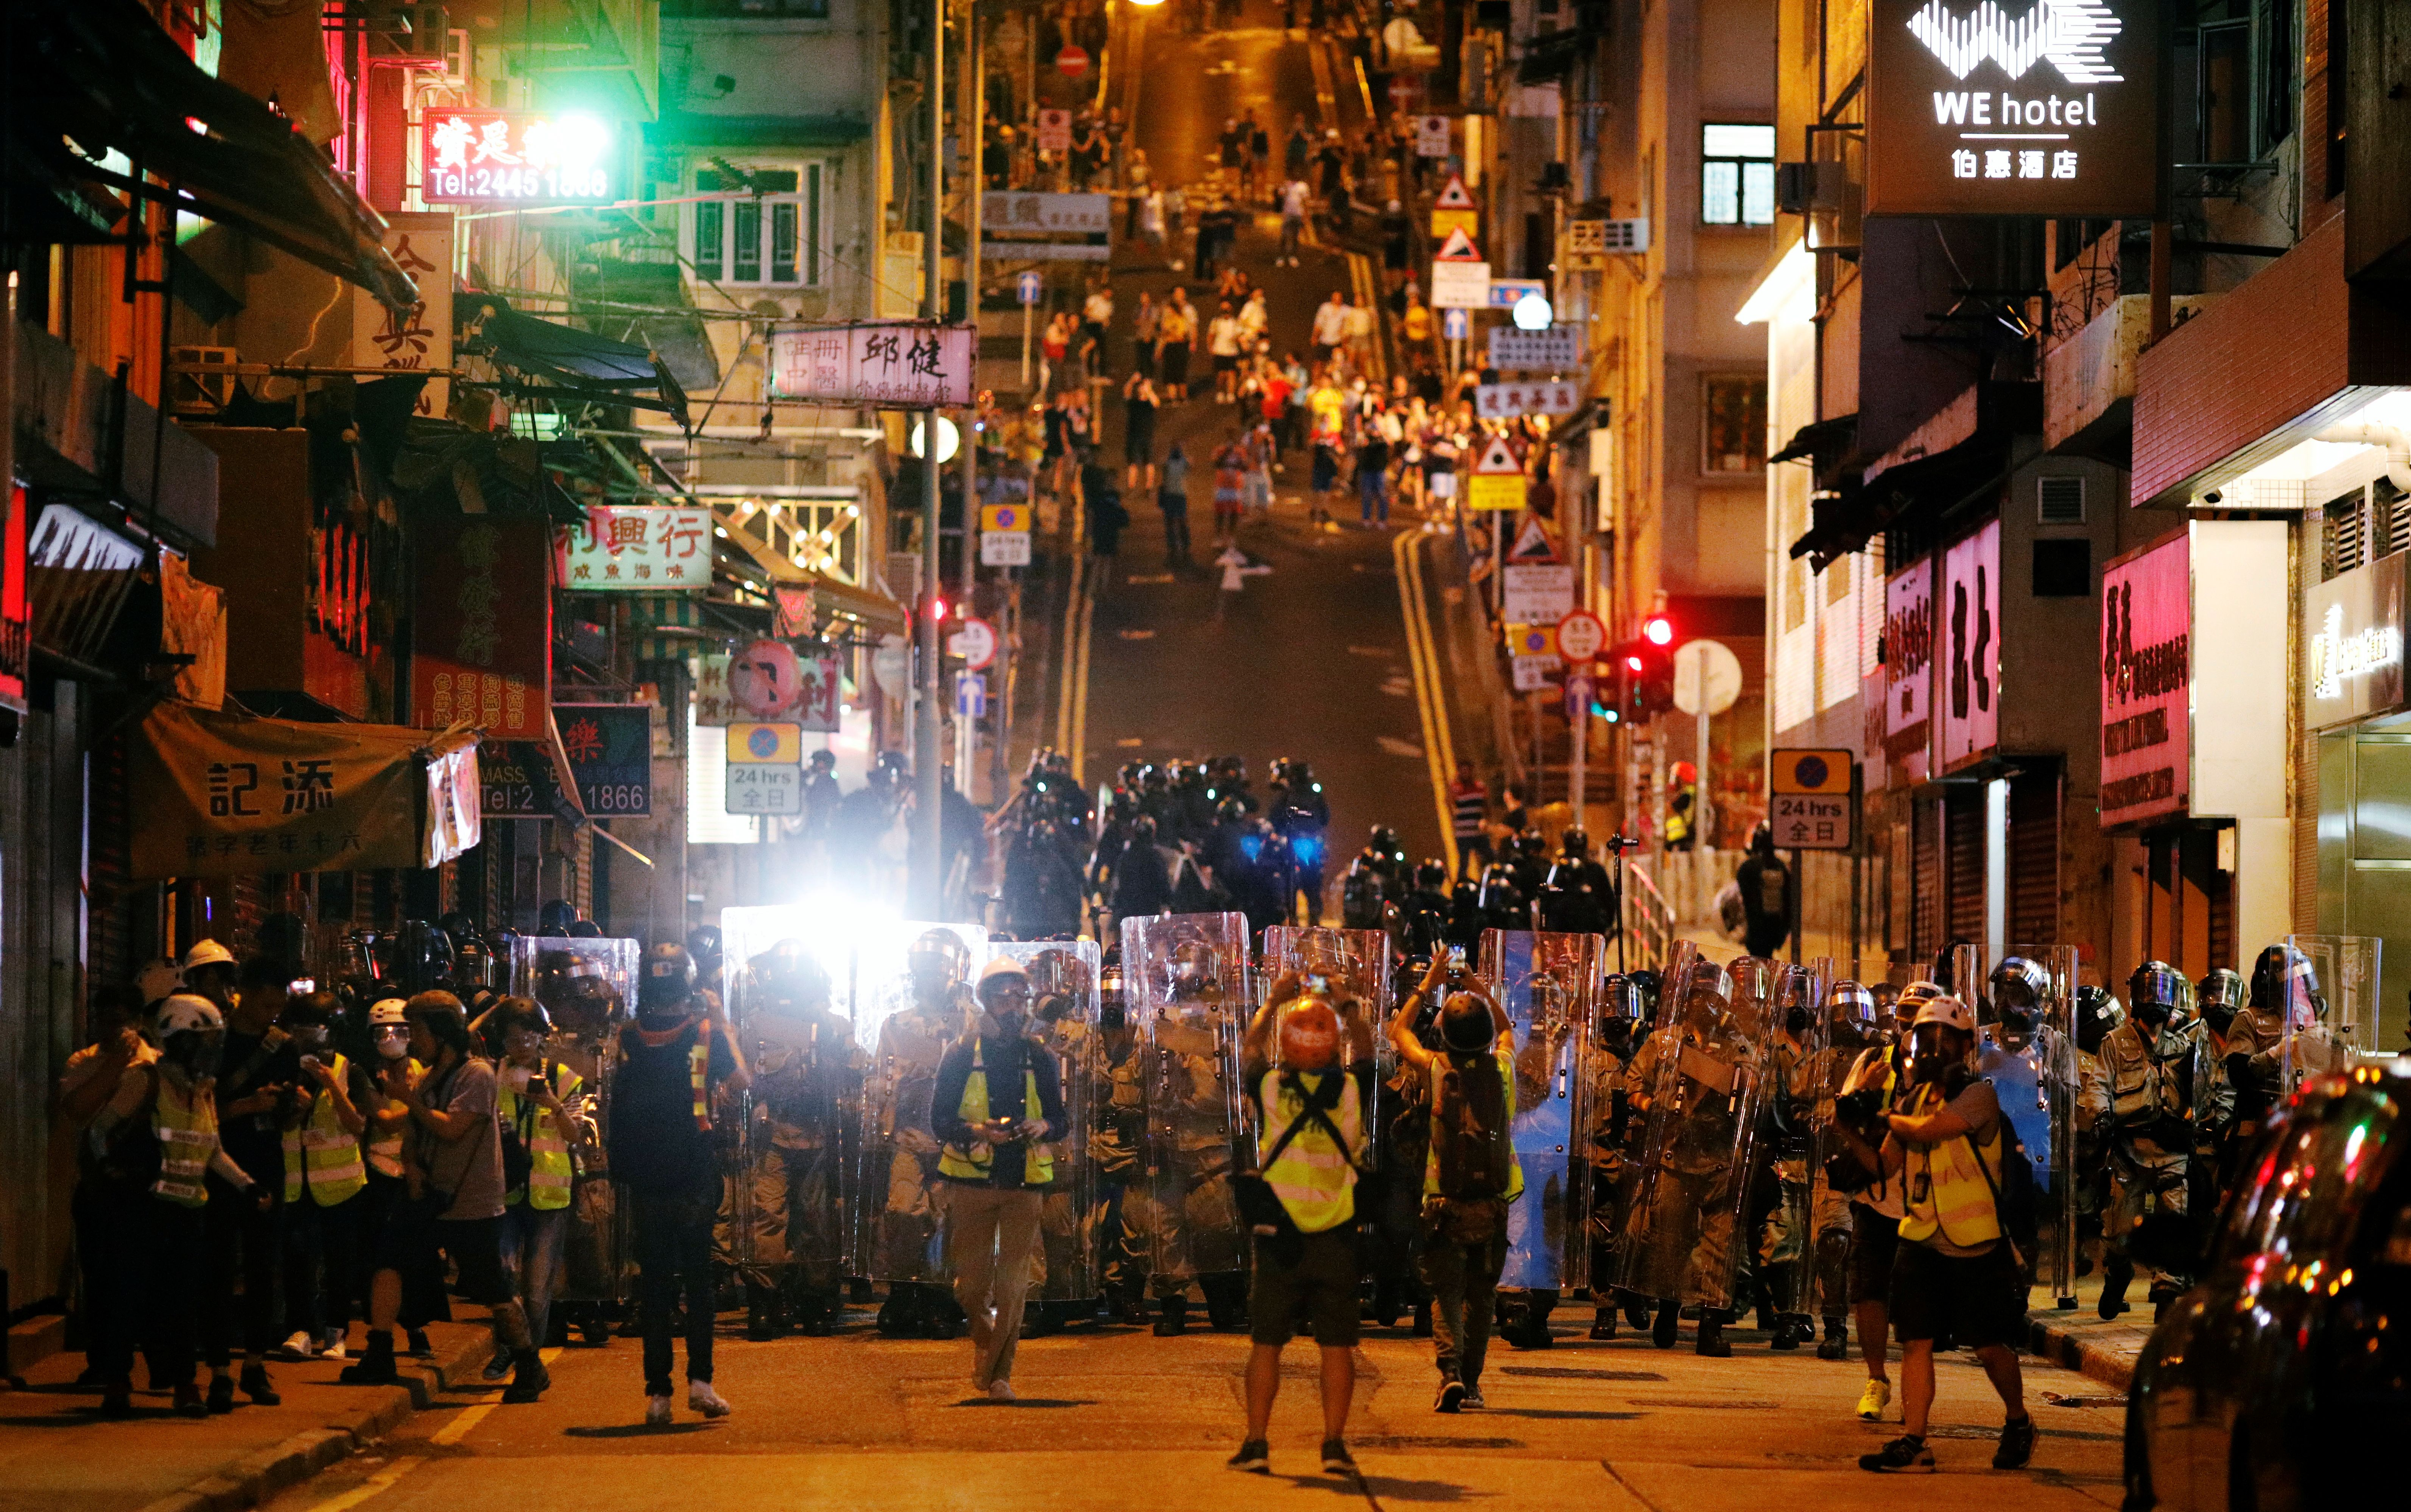 Social media has become a battleground in Hong Kong's protests